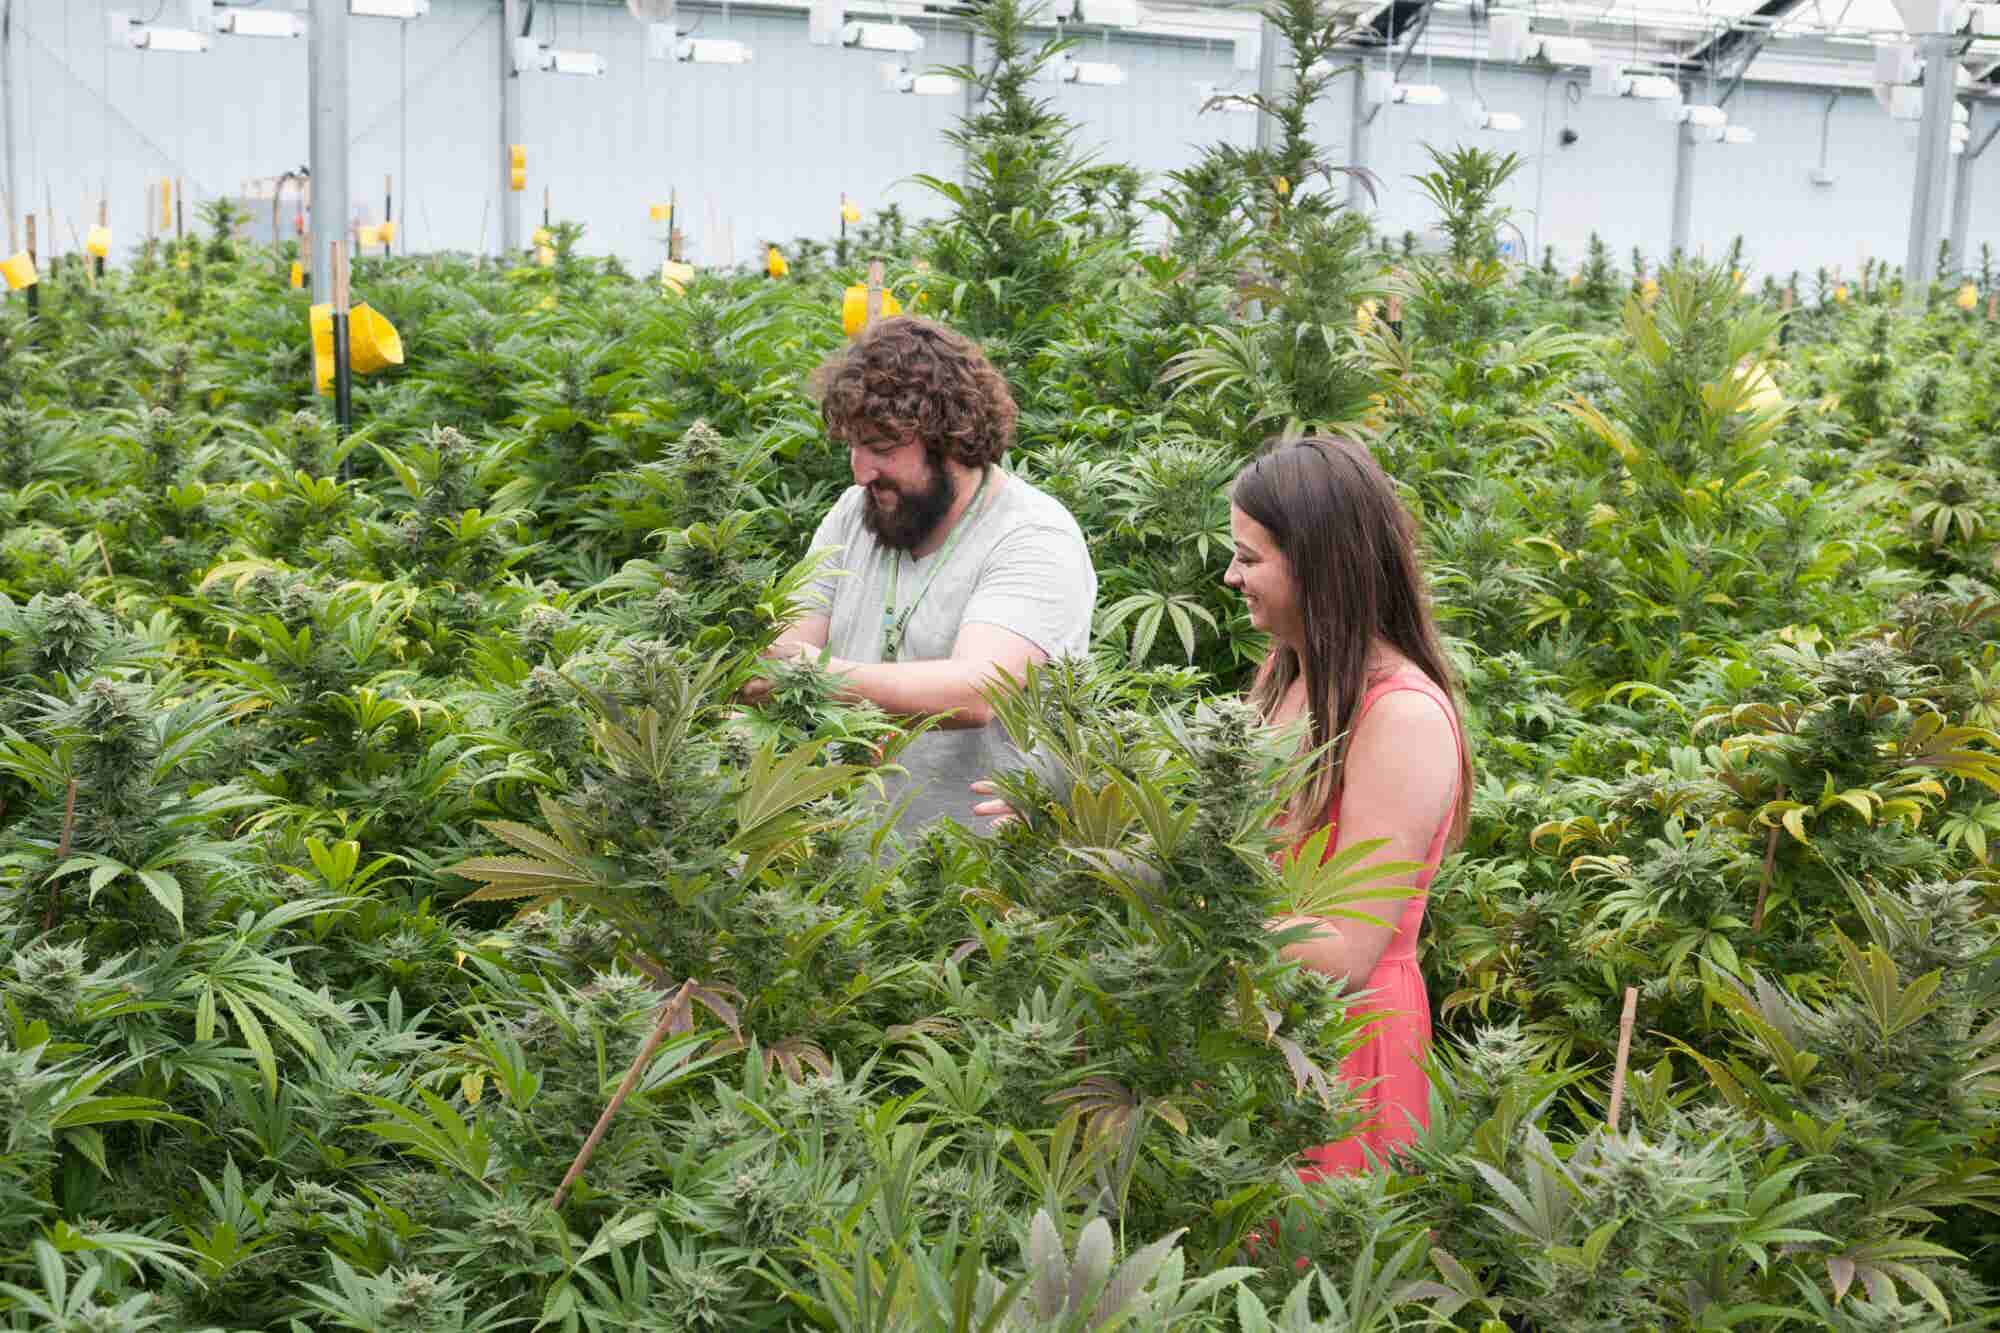 8 Truly Unique Jobs in Cannabis